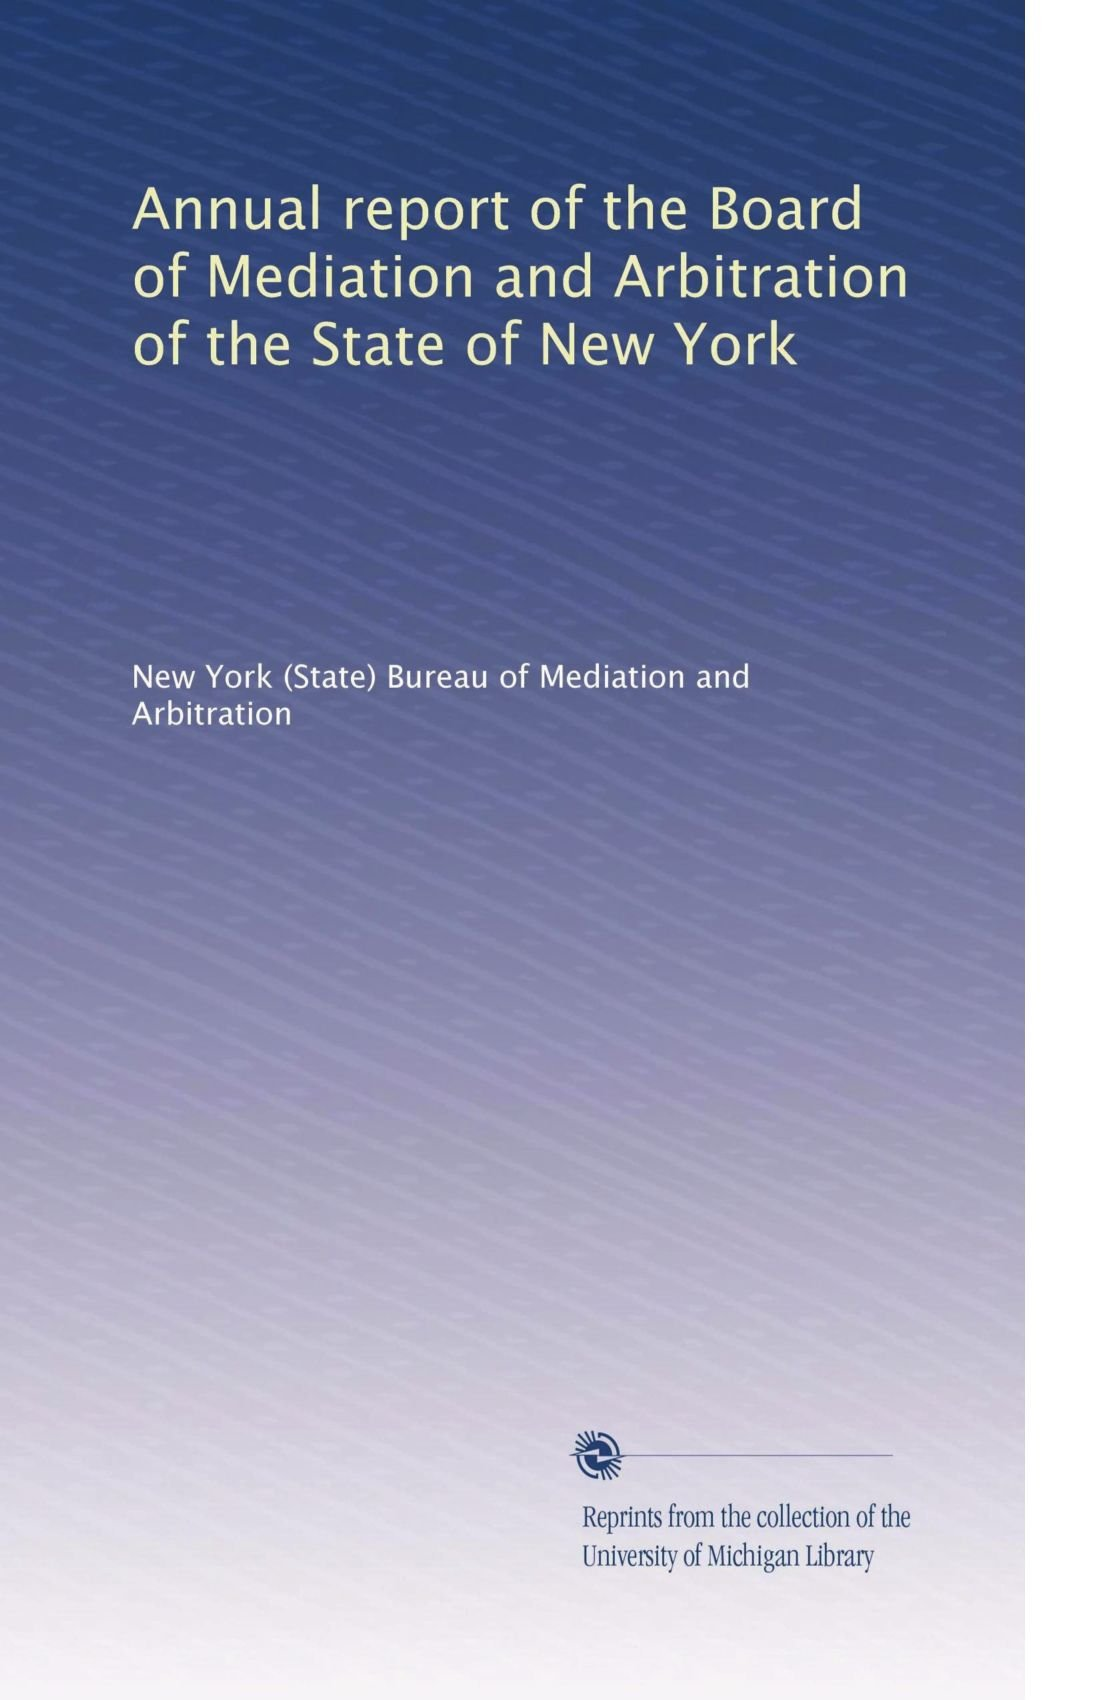 Annual report of the Board of Mediation and Arbitration of the State of New York (Volume 8) ebook